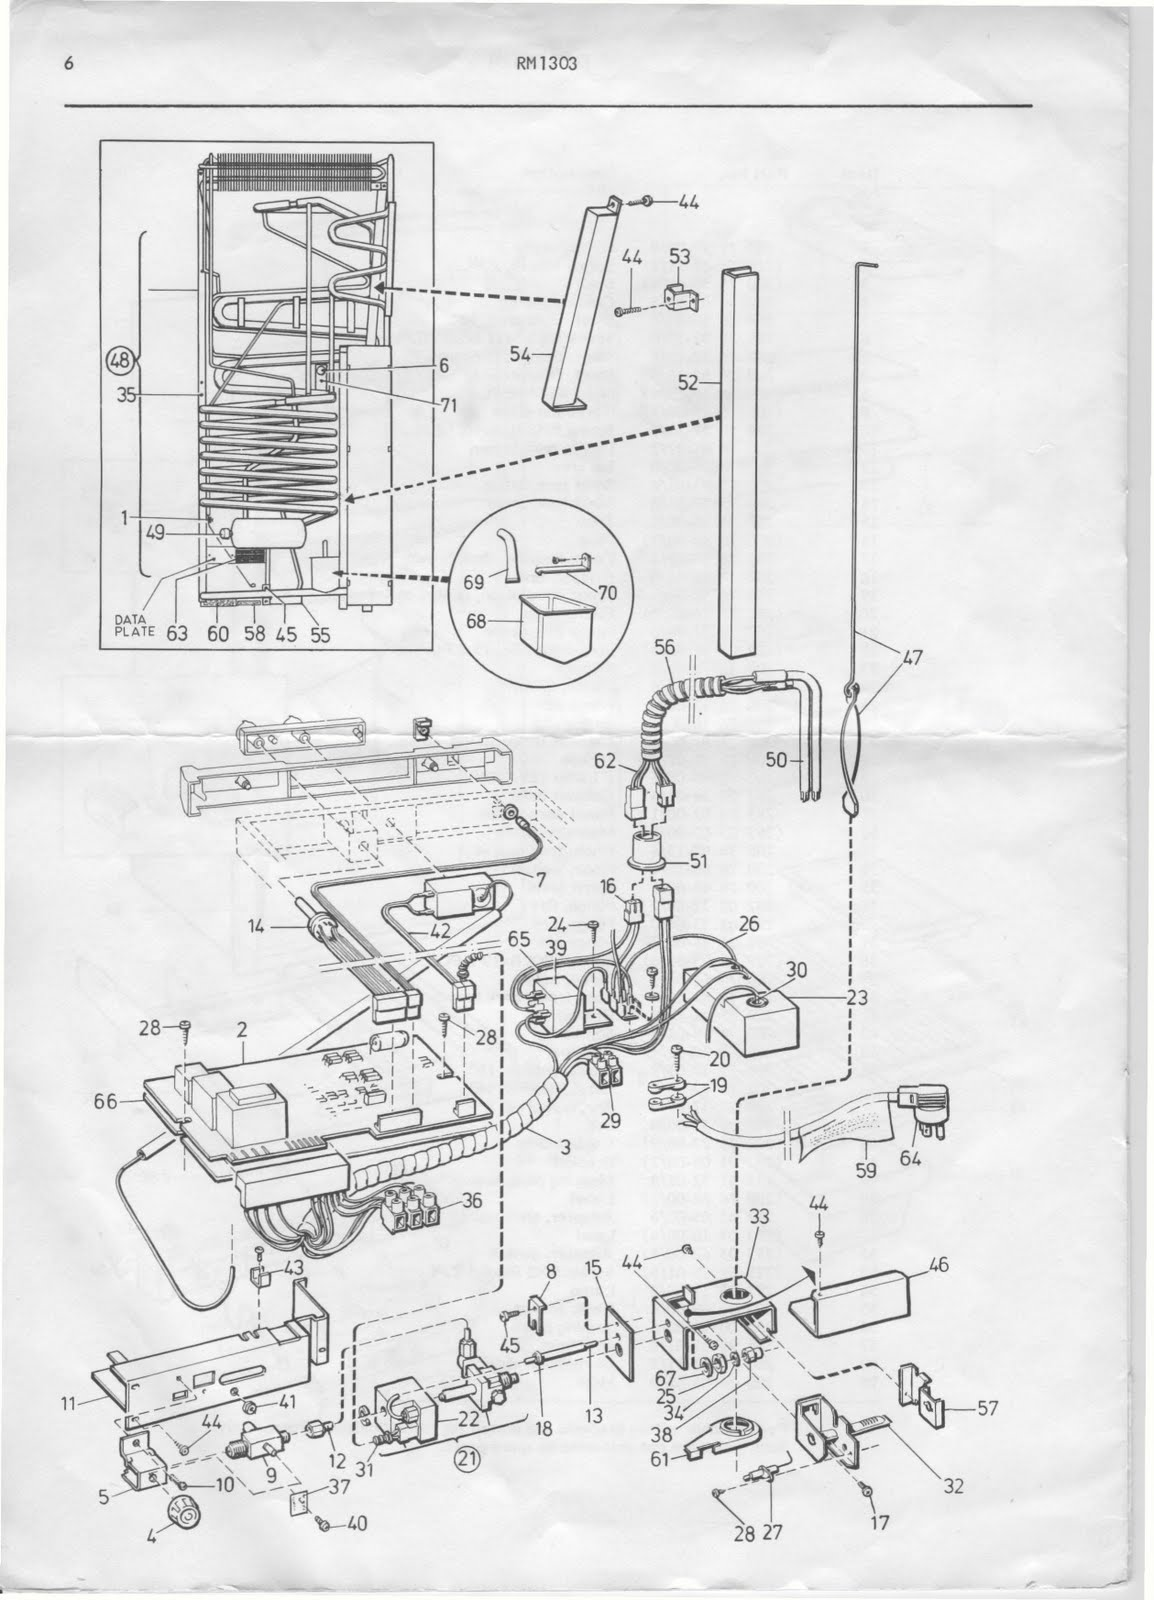 Dometic Refrigerator Wiring Diagram Solar Pv 3 Phase Rm26 28 Schematic